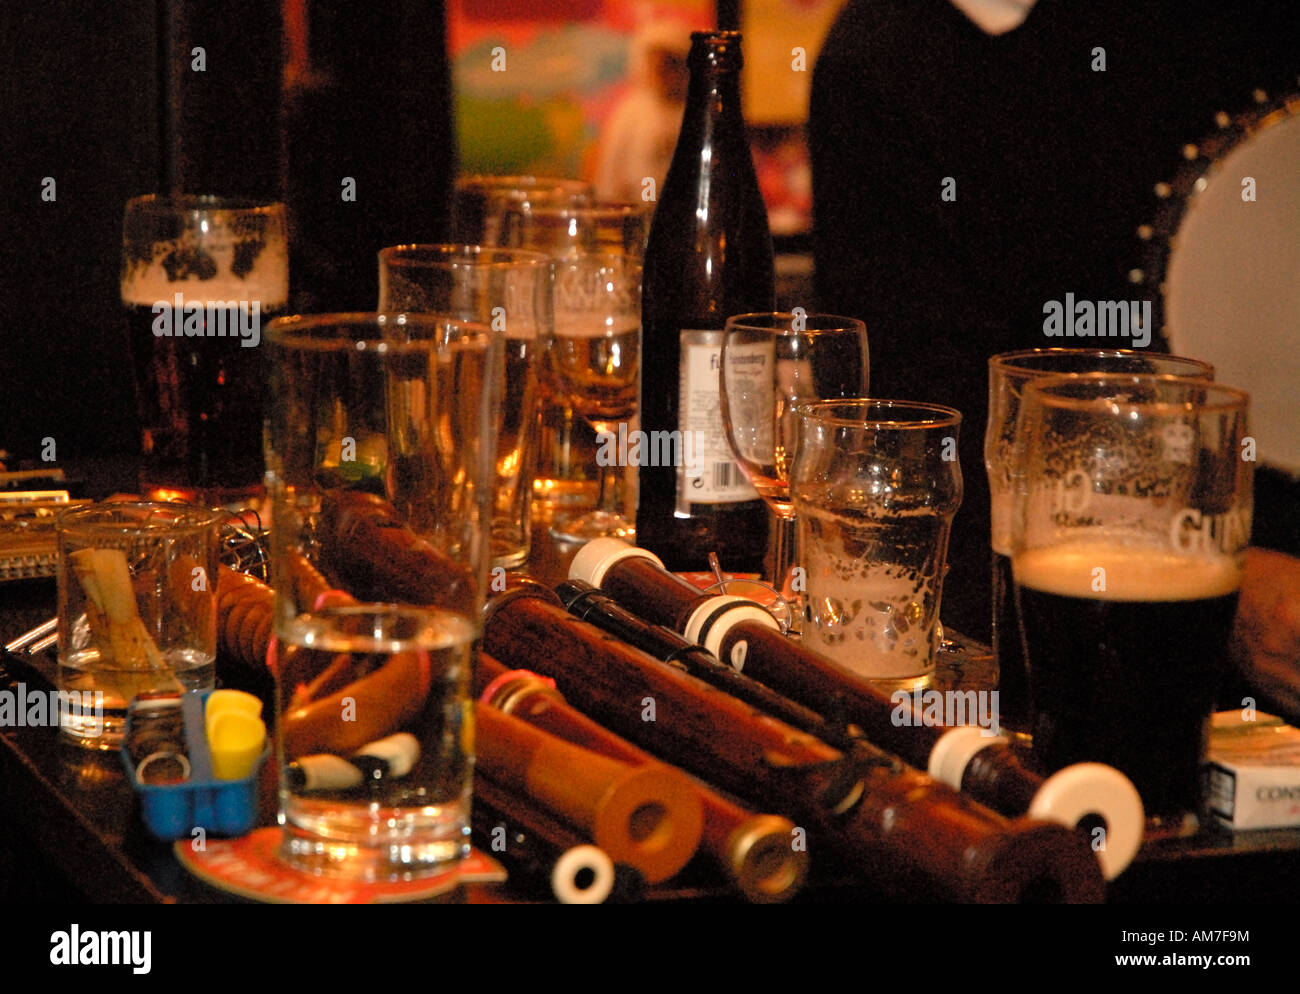 Sandy's bell folk music session Edinburgh Scotland - Music instrument and pint on beers on table - Stock Image